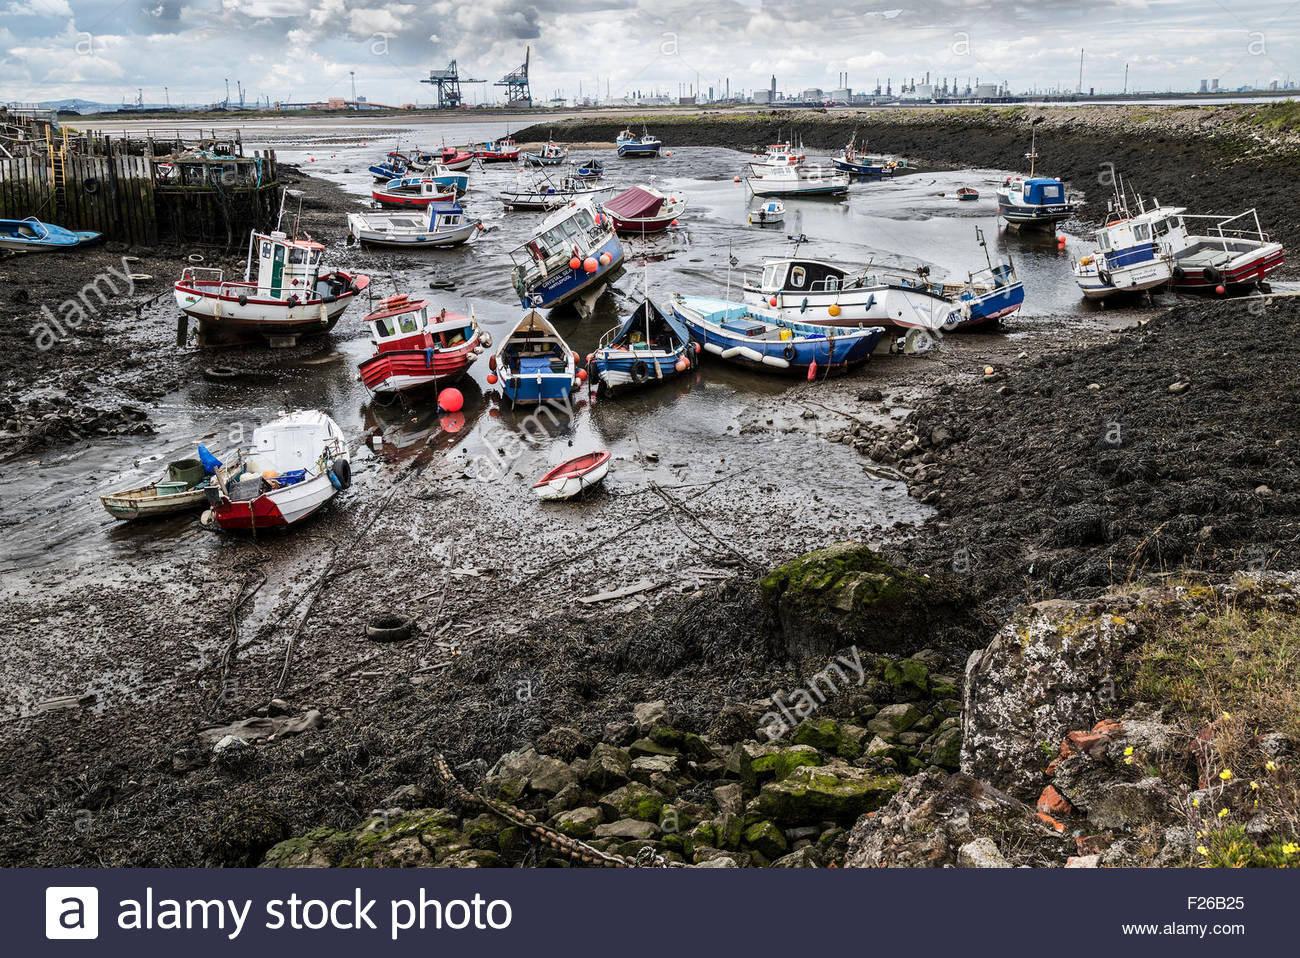 Boats at low tide in Paddy's Hole - Stock Image